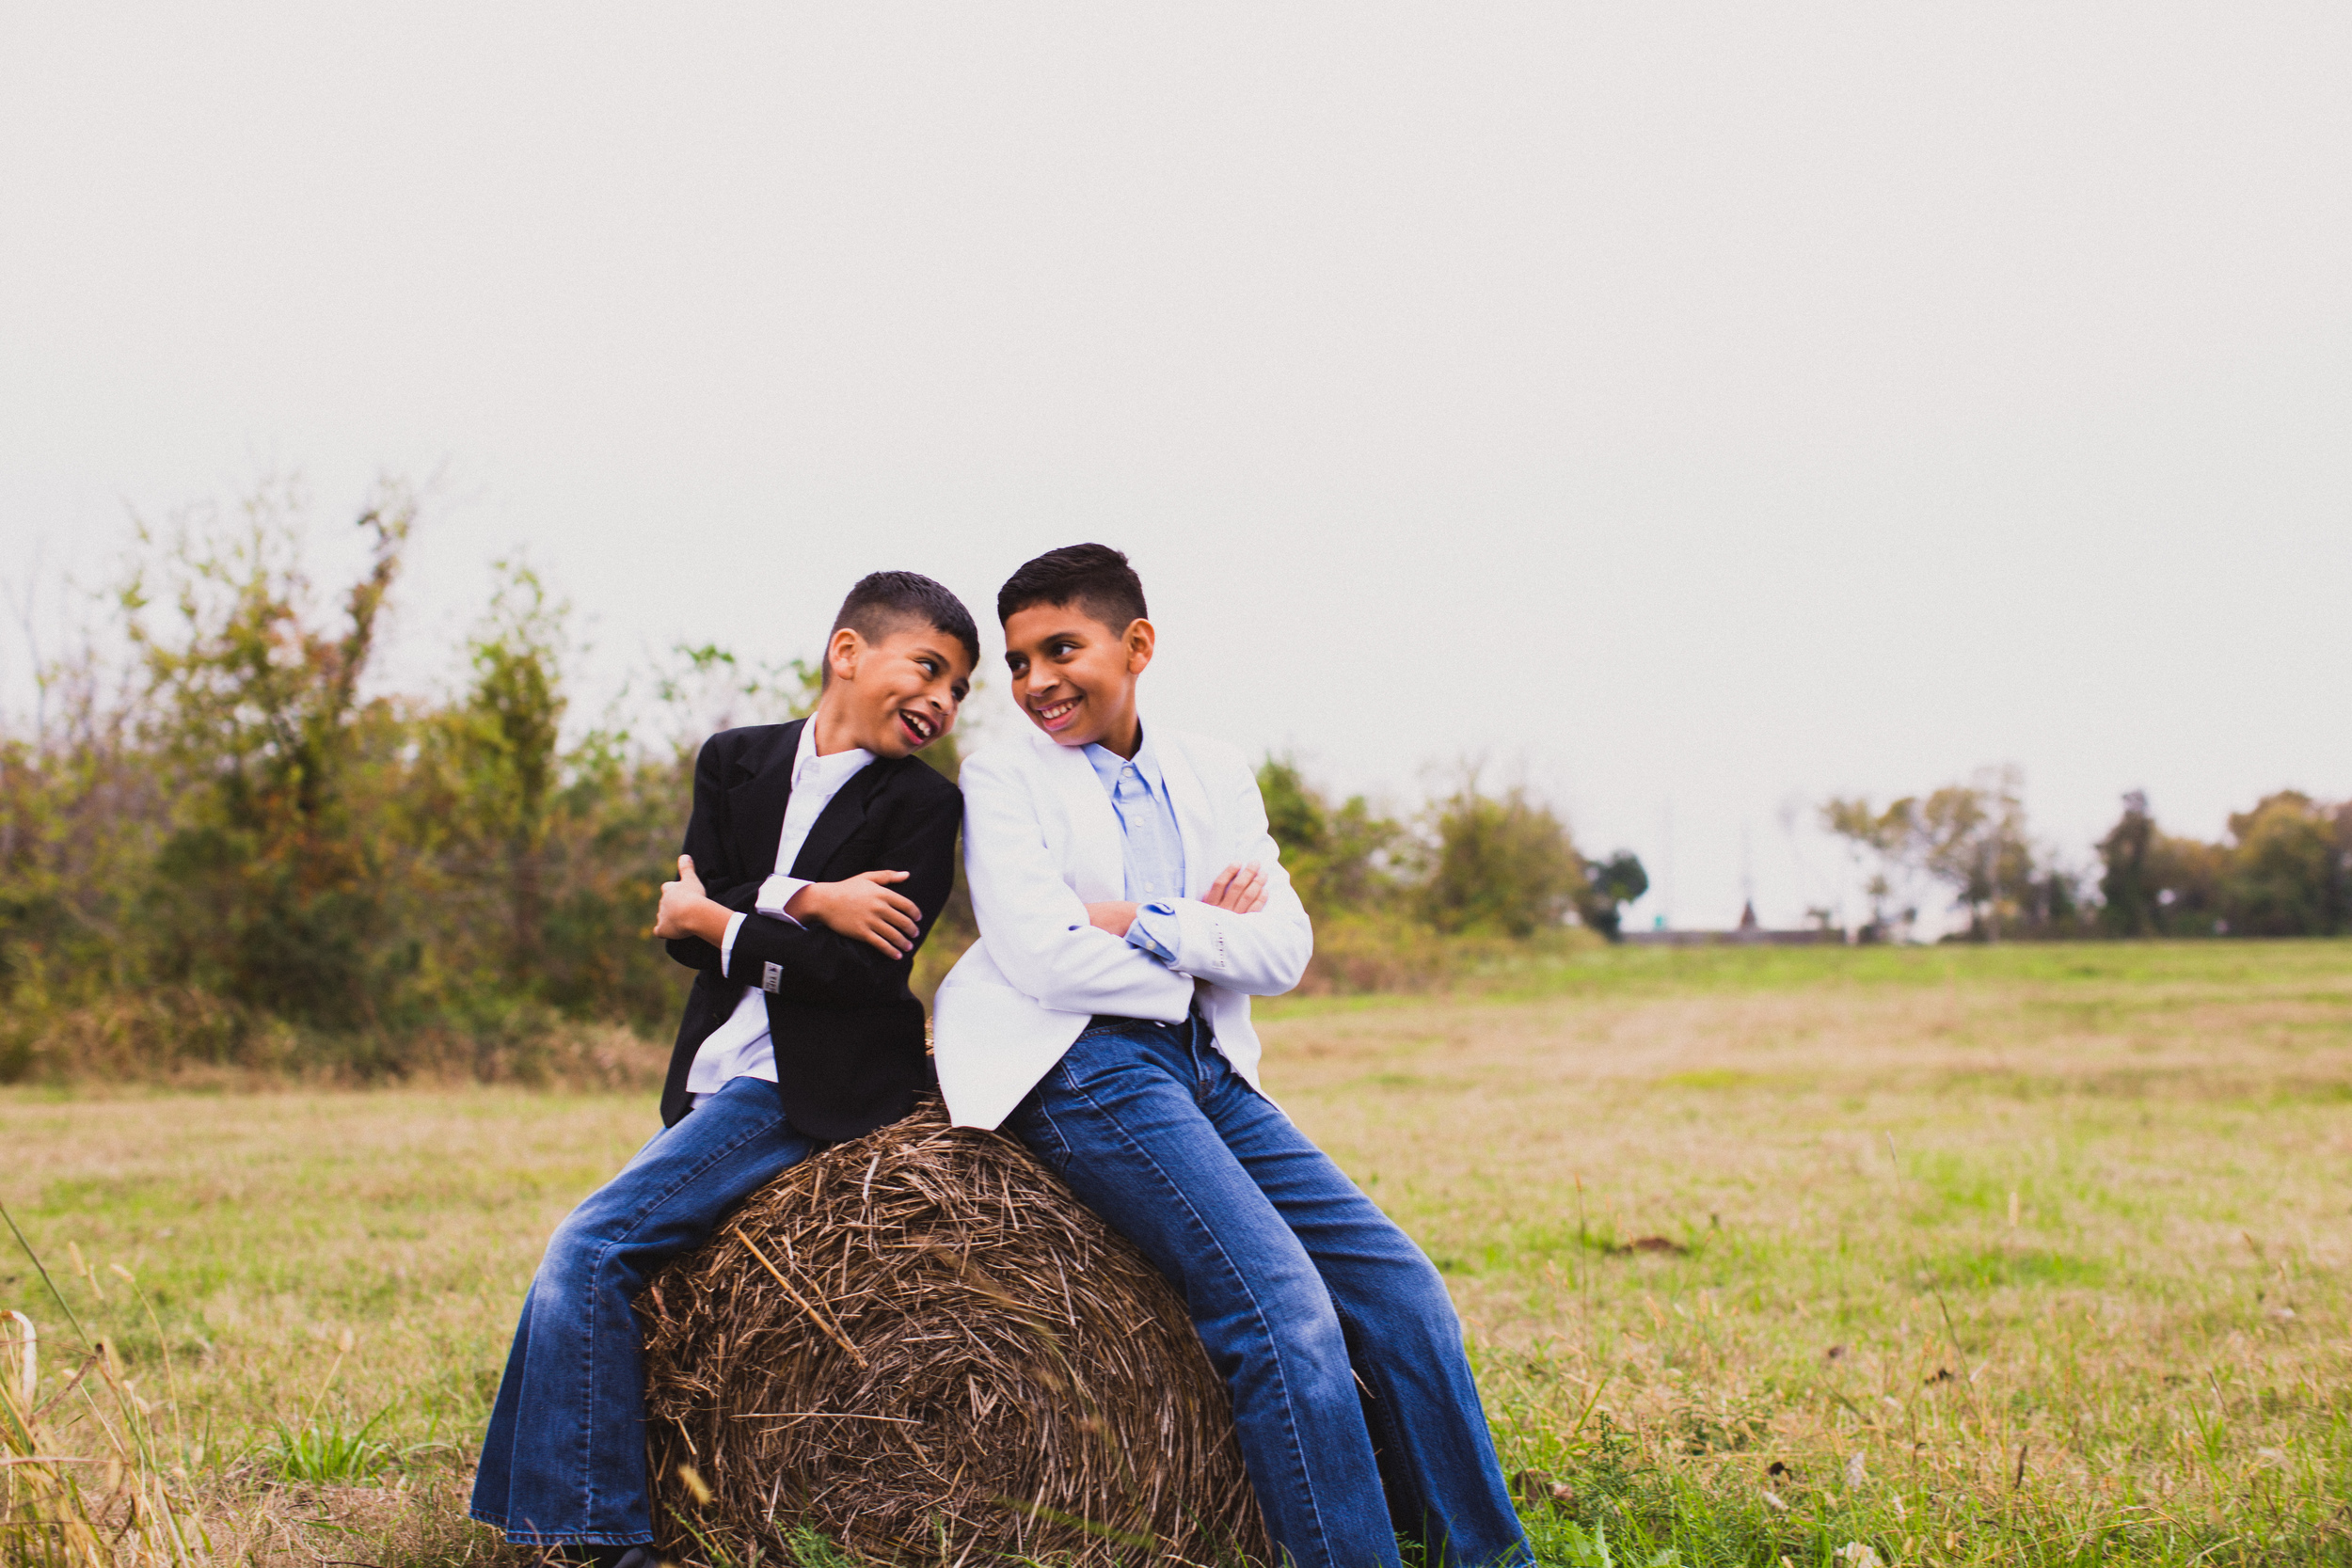 houston family photography_h2014_henriquez-157.jpg